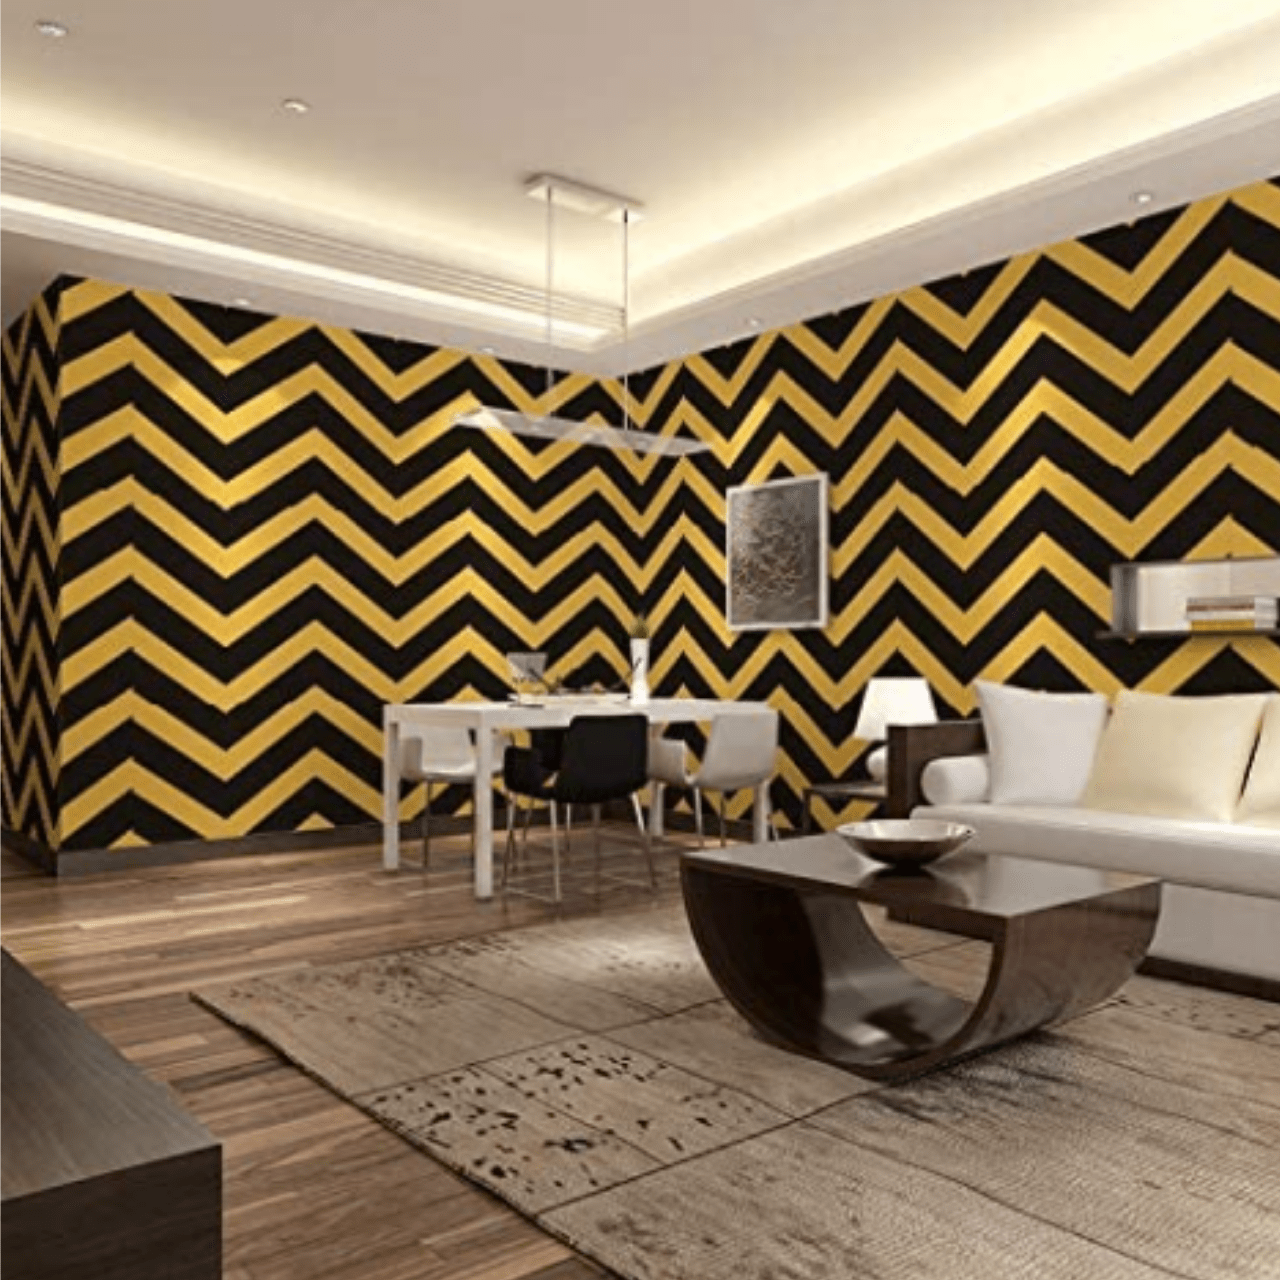 How to Upgrade Your Home Office With Wallpaper